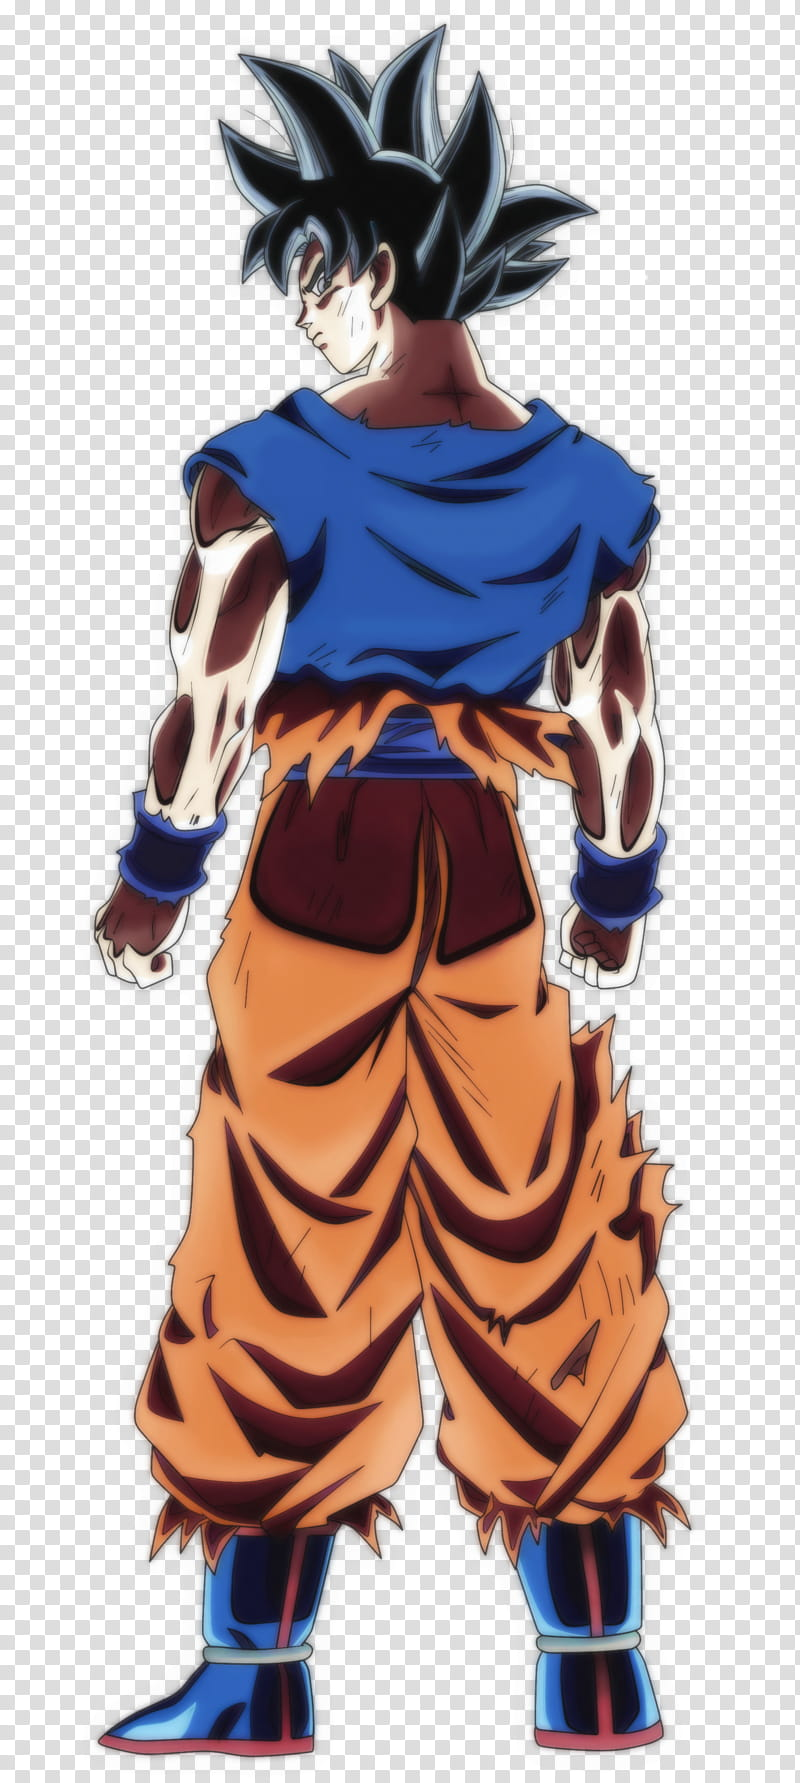 Goku migatte no gokui clipart clip art black and white stock Universe_survival transparent background PNG cliparts free download ... clip art black and white stock